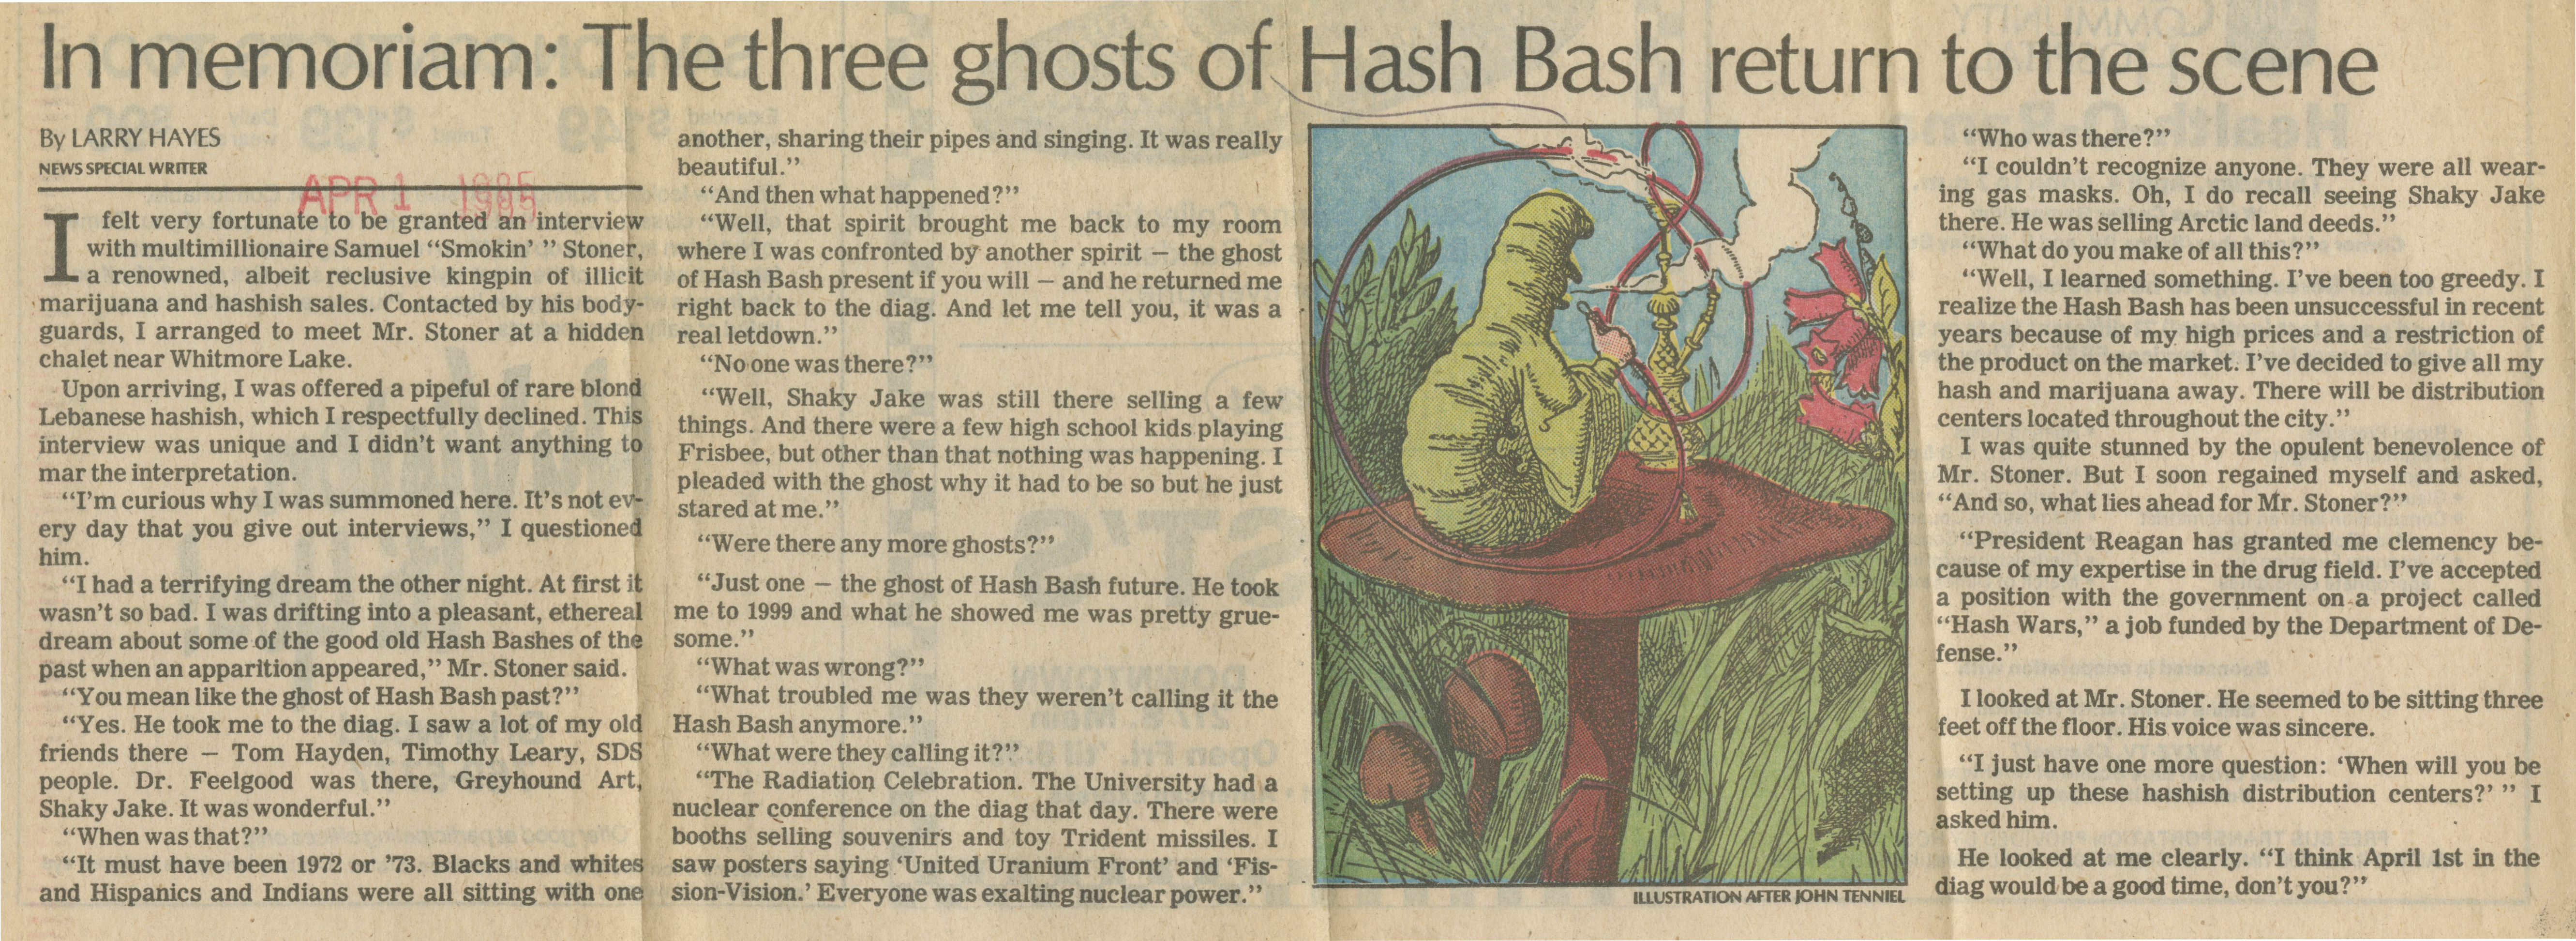 In Memoriam: The Three Ghosts Of Hash Bash Return To The Scene image